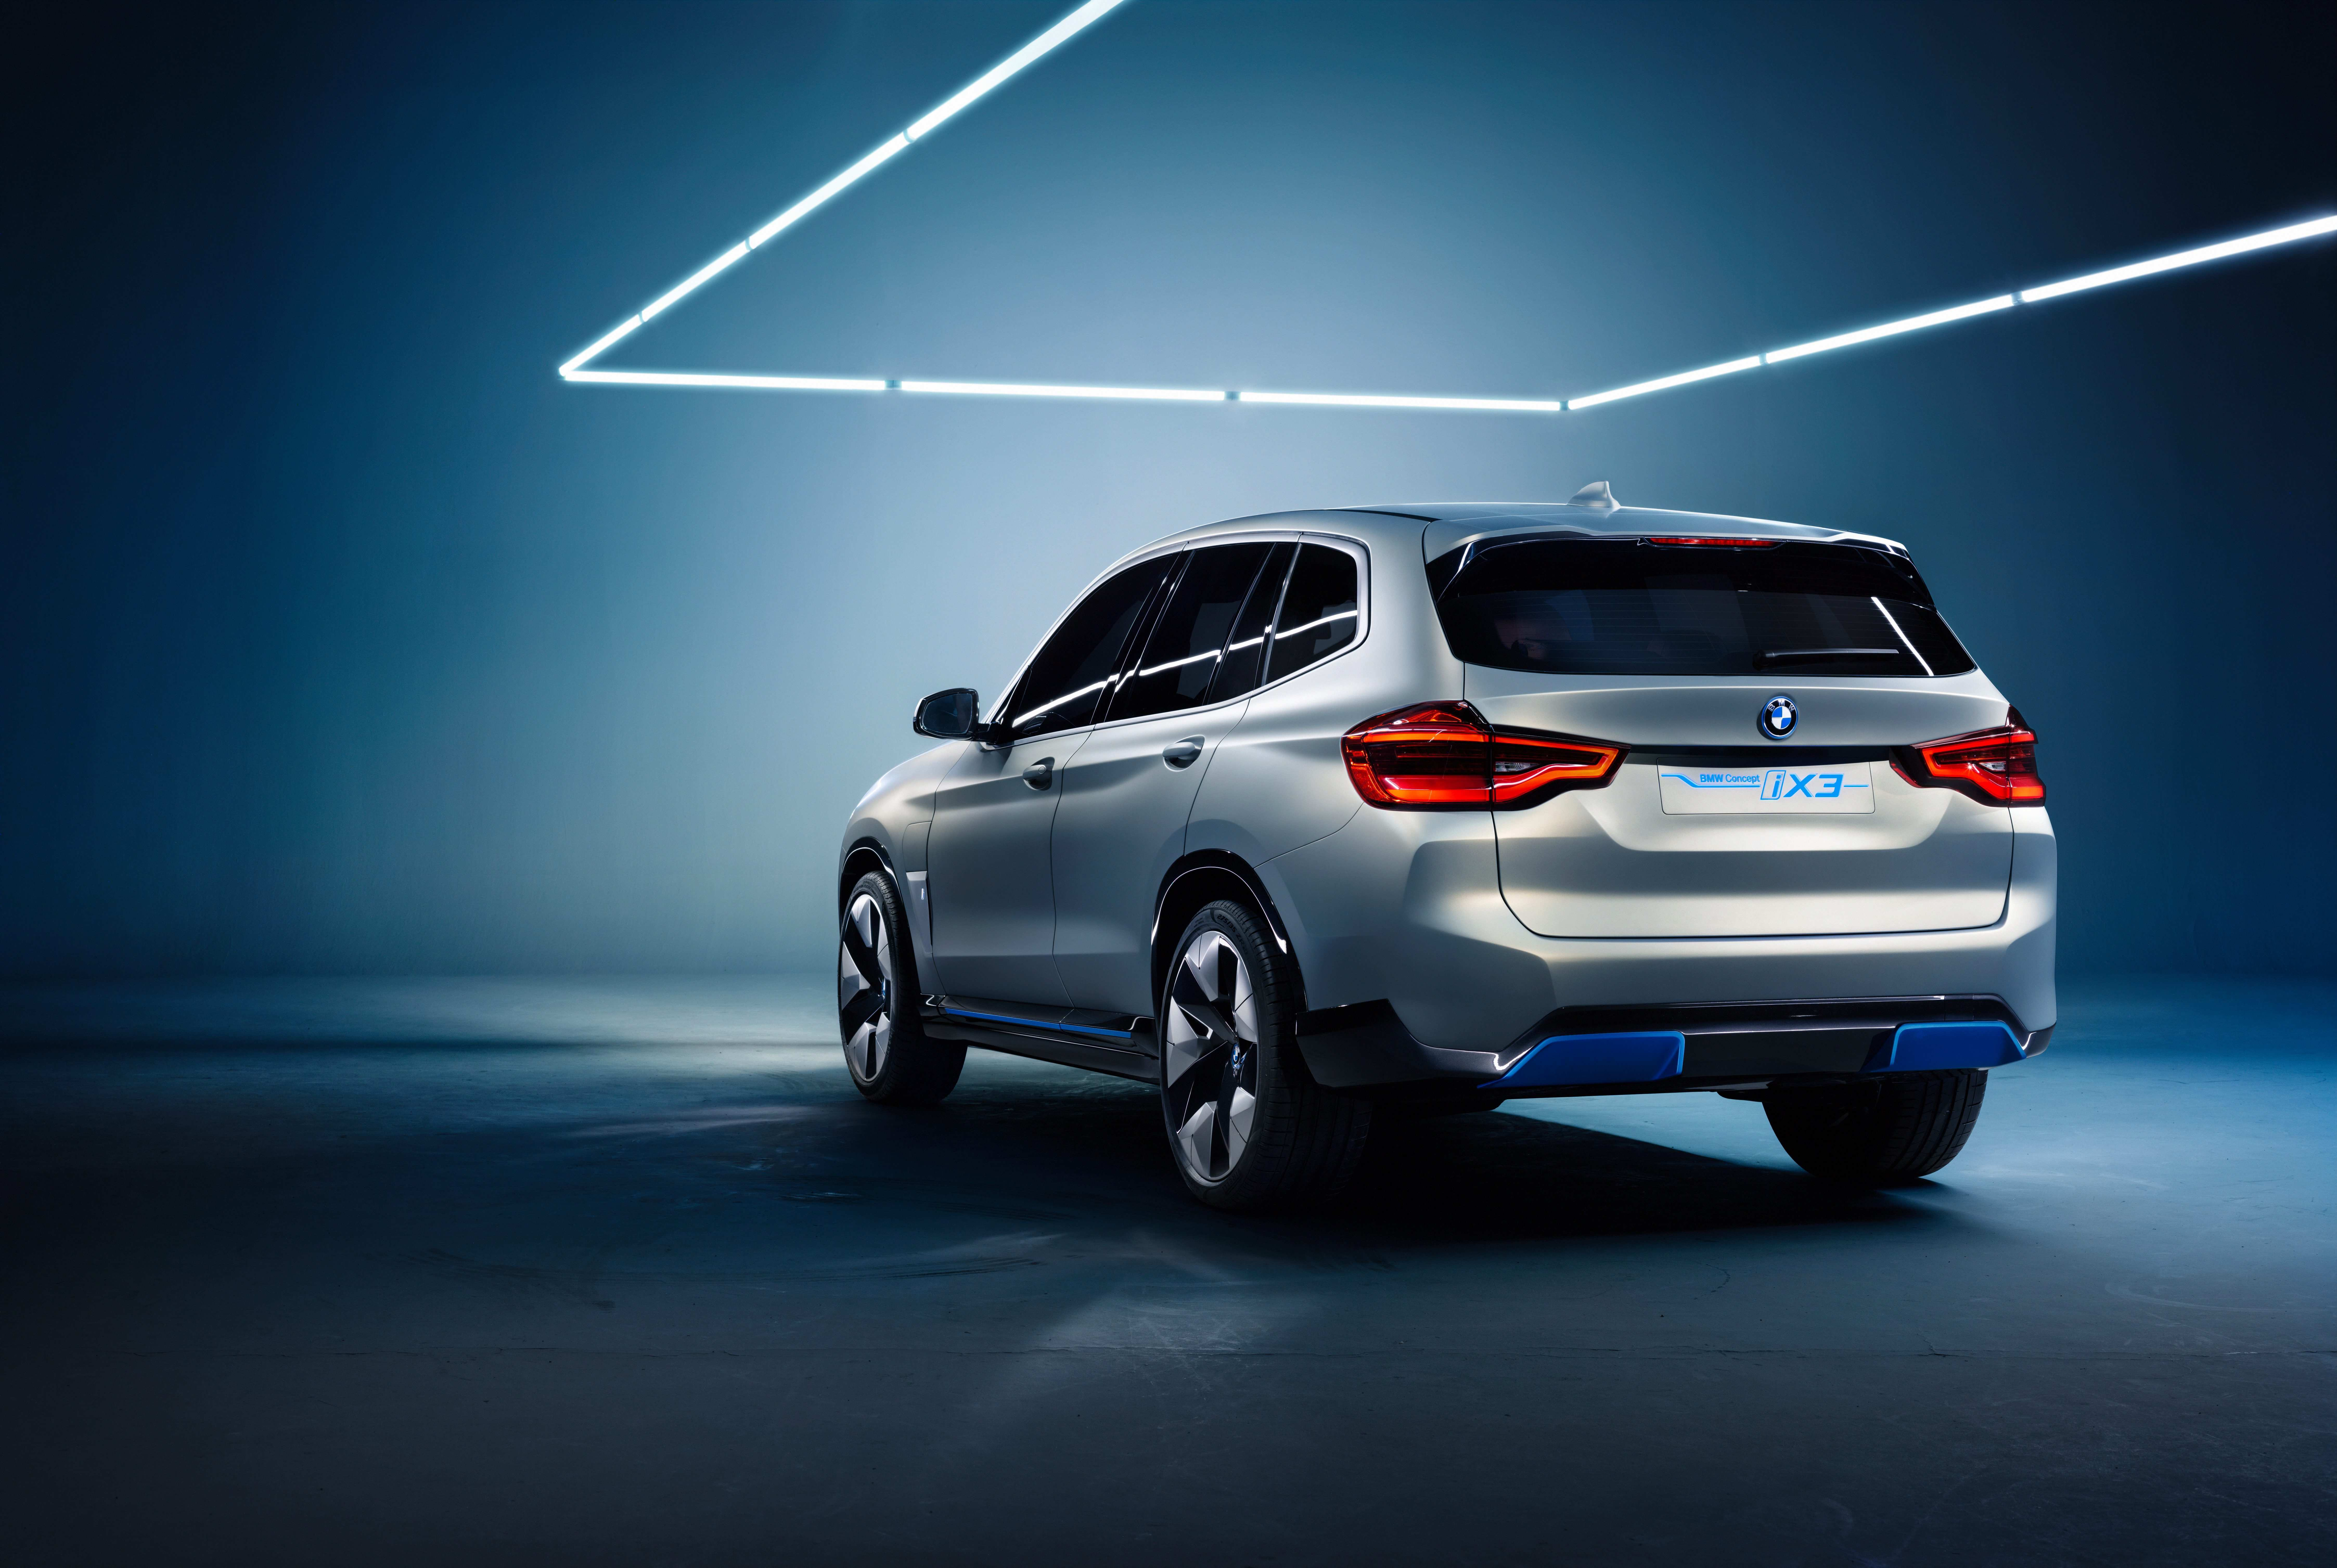 67 All New 2020 Bmw X3 Electric Price And Review